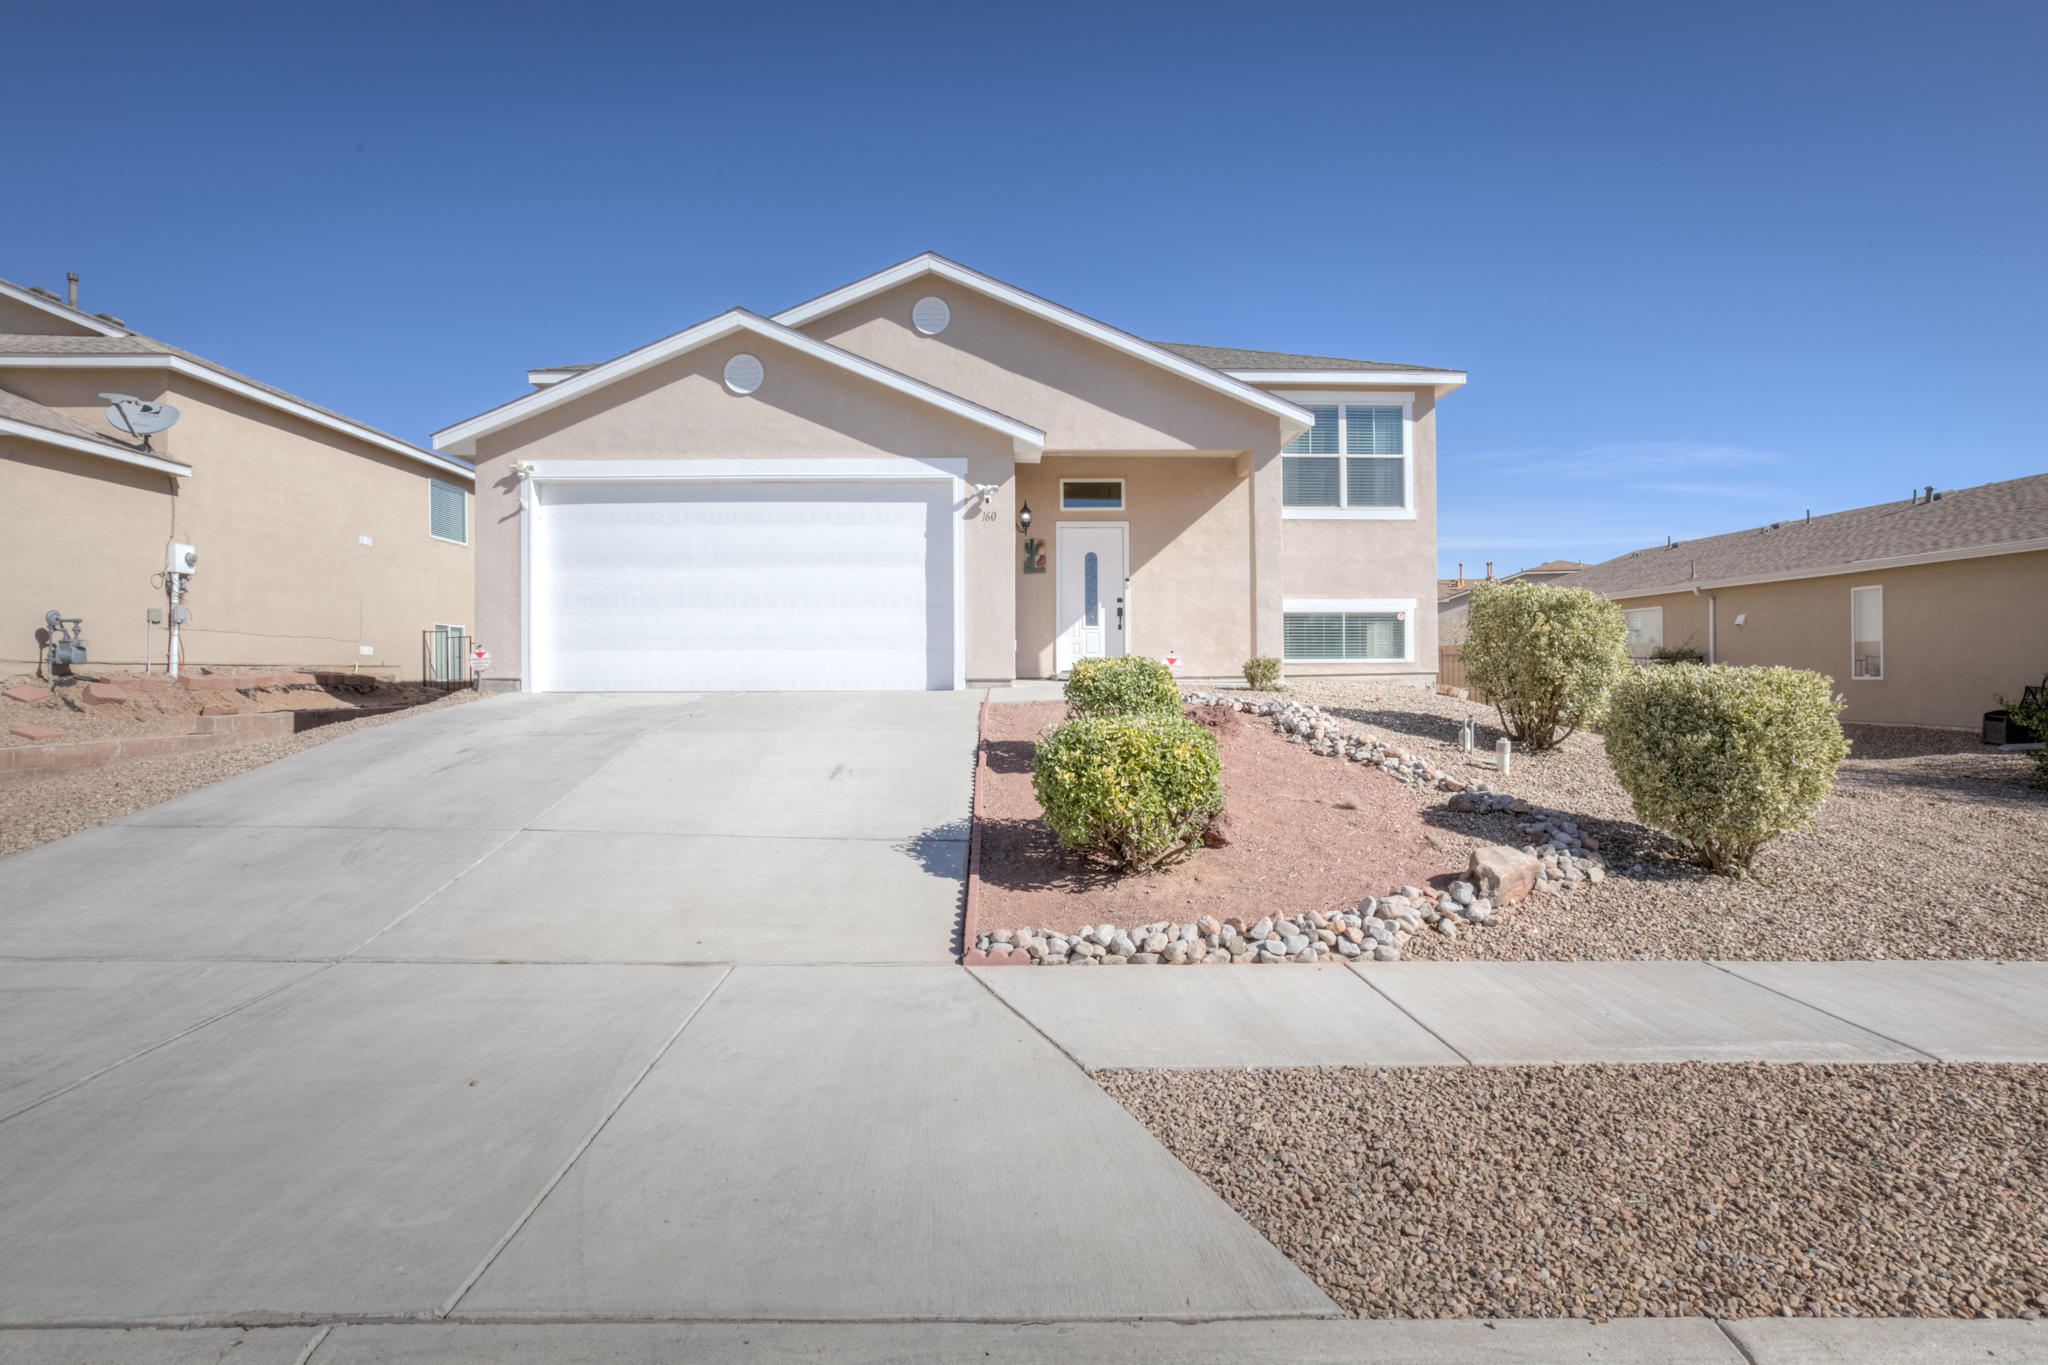 Why go with new construction when you can have this beauty near Hunning Ranch Park? You'll fall in love with this split level, 5 bedroom, 3 bath home close to town and I-25. Features include new Pergo XP flooring (December 2020), newer kitchen appliances (2018), refrigerated air (2015), Plateau Fiber Optic Cable wired in, oversized garage with storage and motion sensor lighting, alarm system stays and sellers will pay for three months of monitoring for new buyers. Don't miss out--come fall in love with your new home!